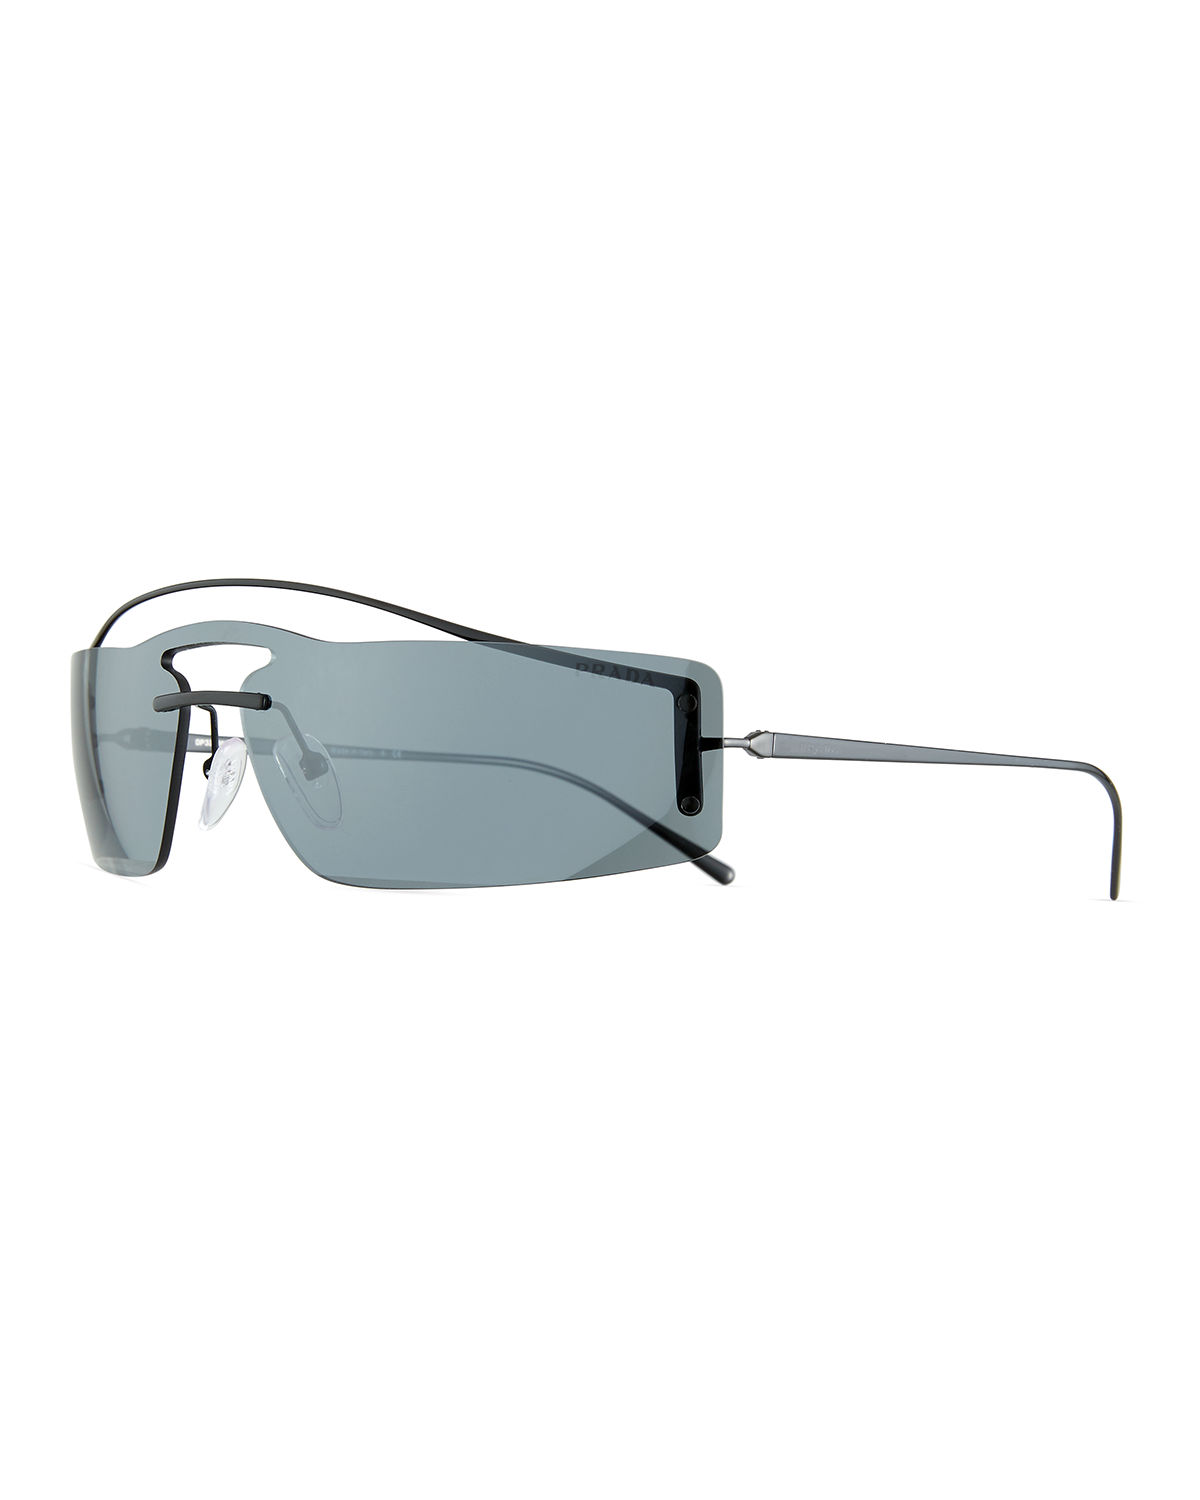 7a82498129 Prada Men s Rectangle Shield Sunglasses - Mirror Lens